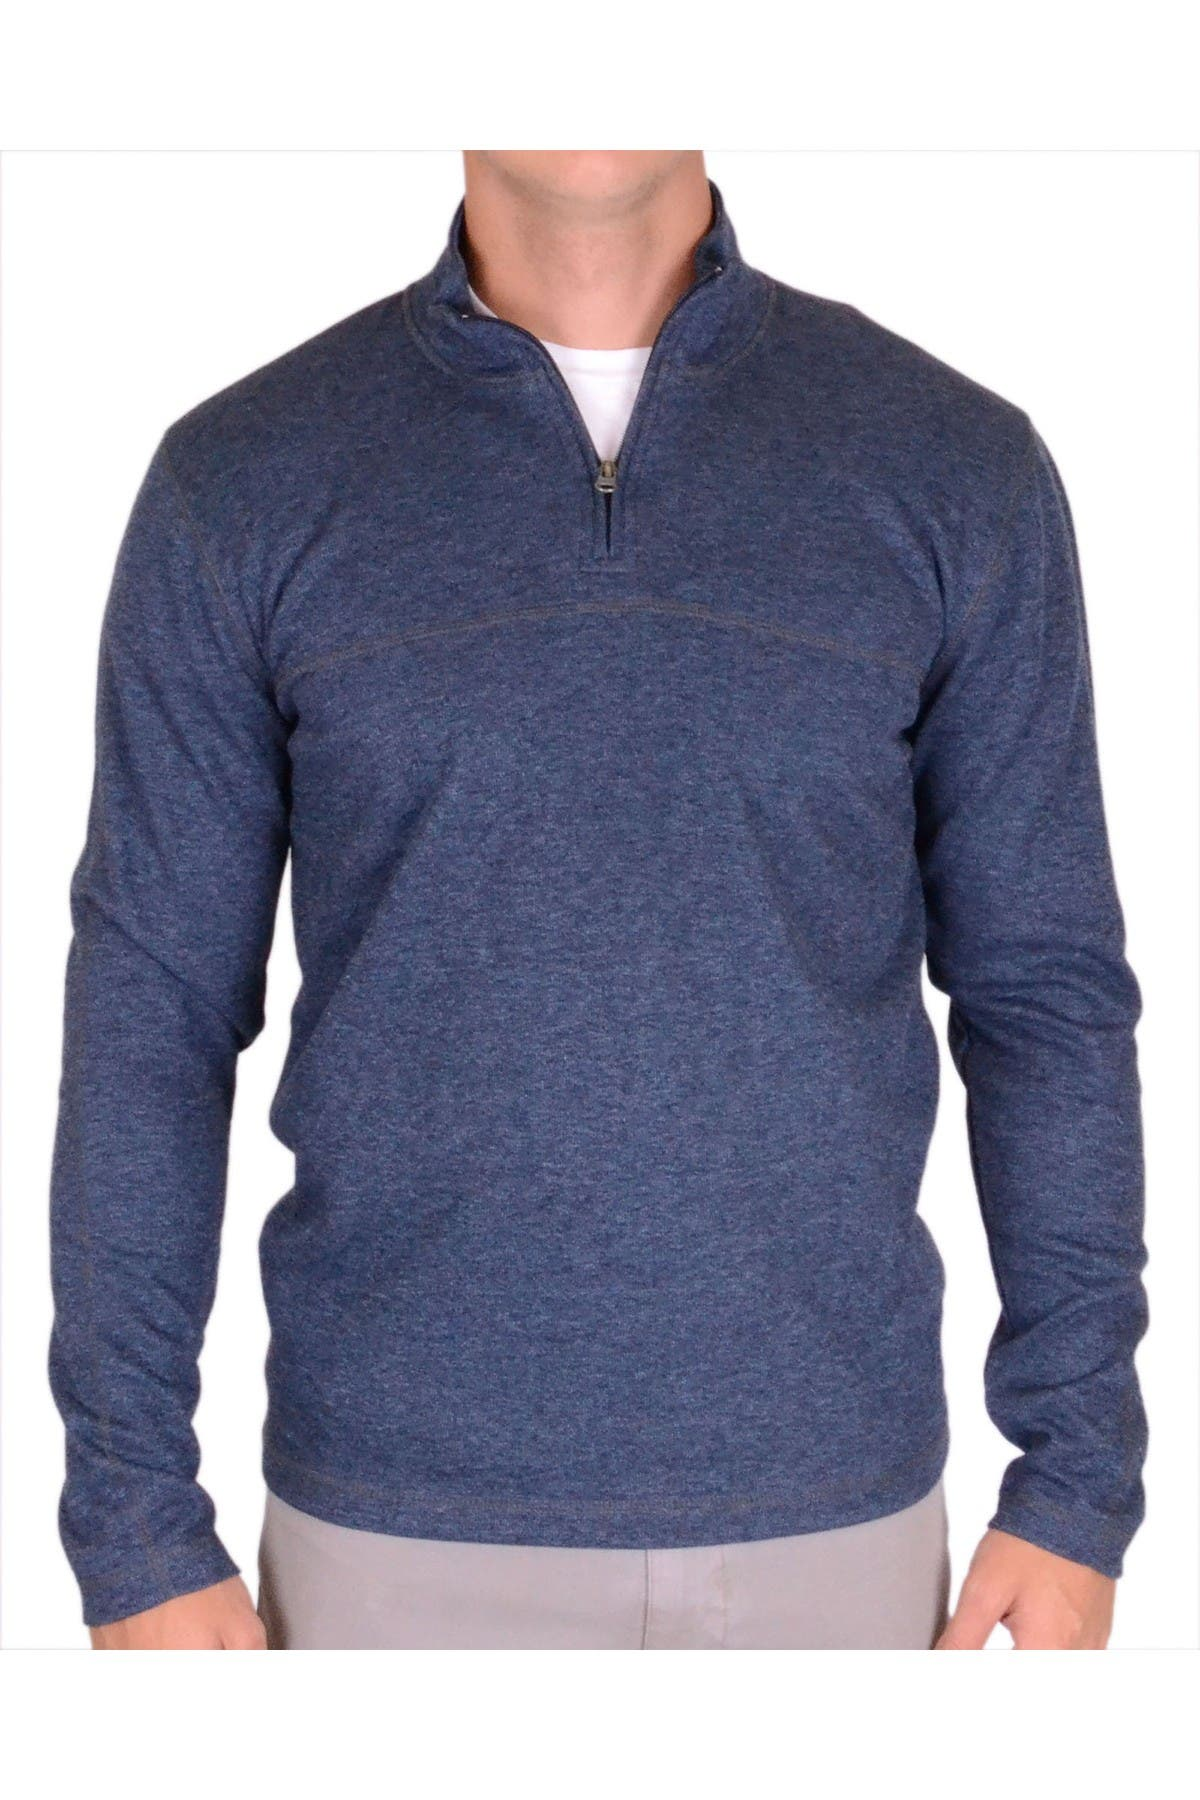 Image of Vintage 1946 Heathered Rib Quarter Zip Thermal